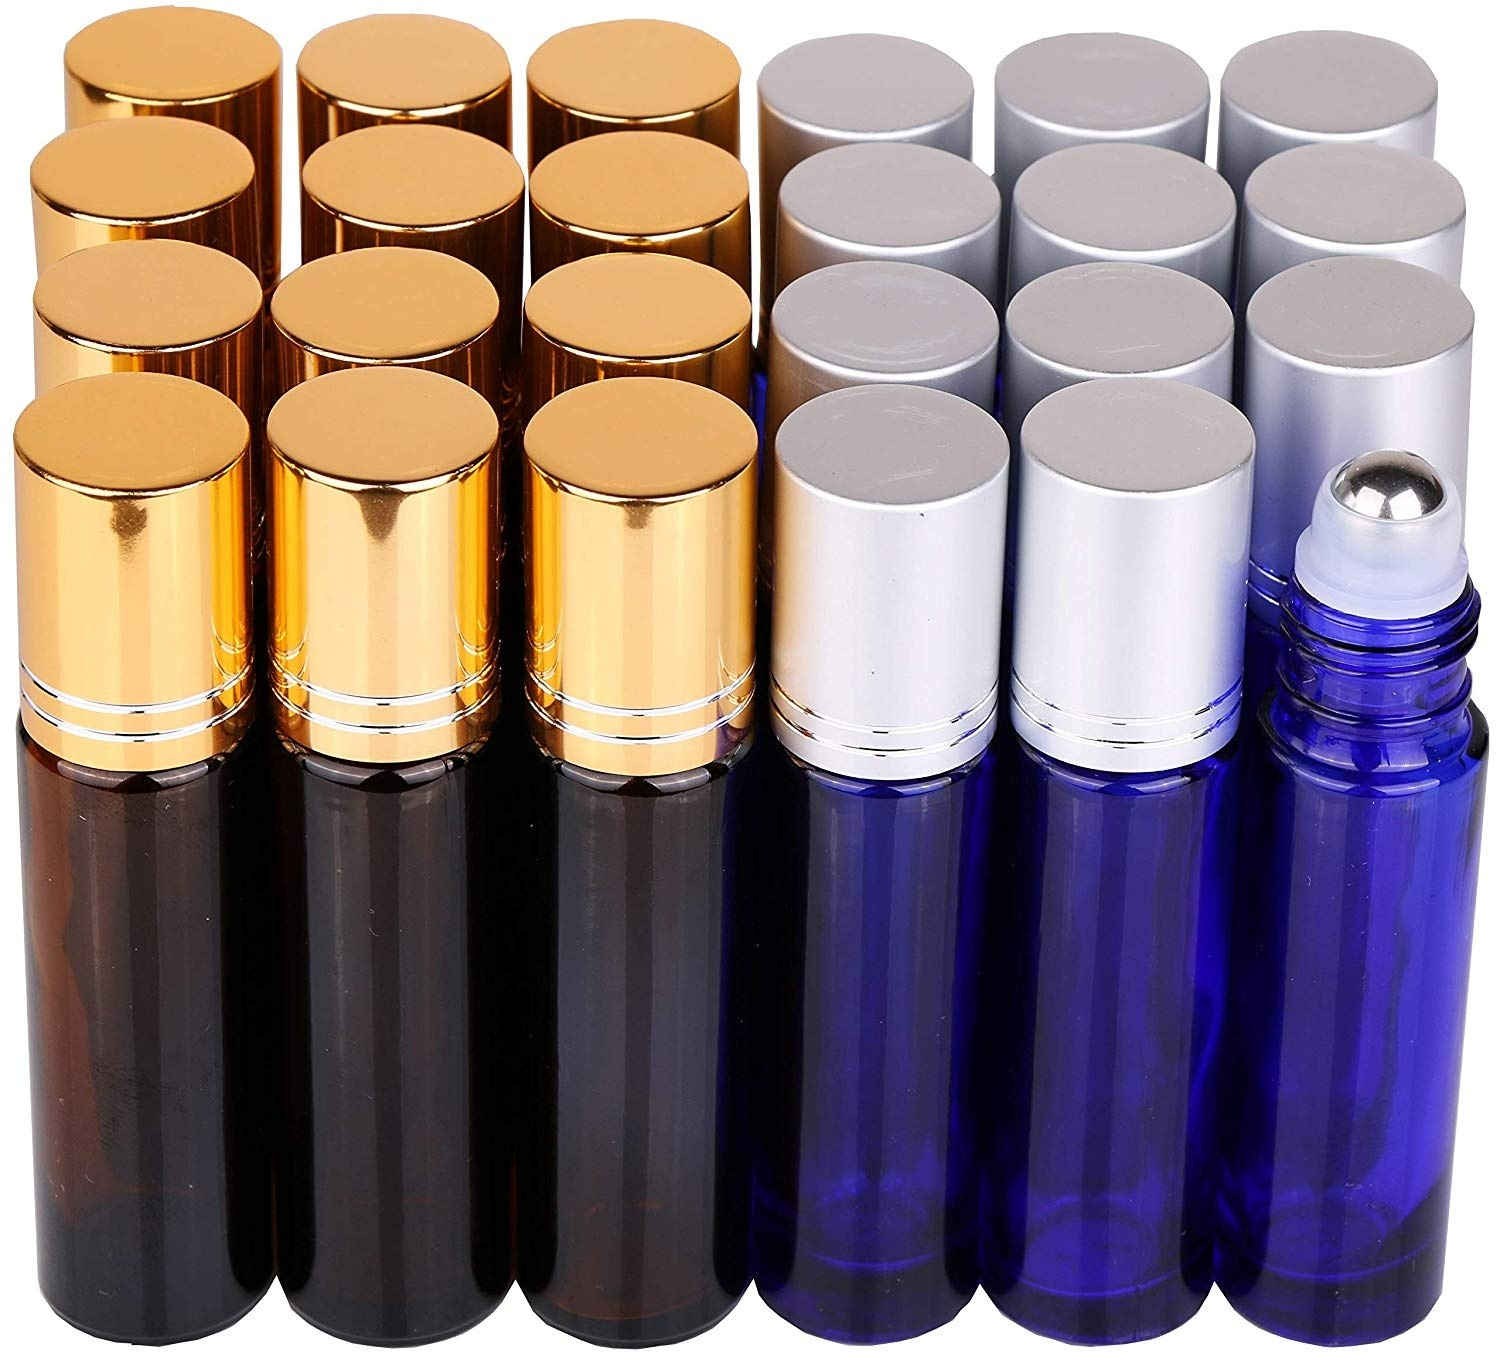 24 Pack 10ml Thick Glass Roller Bottles with Big Steel Ball Roll on Bottle for Essential Oil Perfume + Droppers 3 + Opener 2